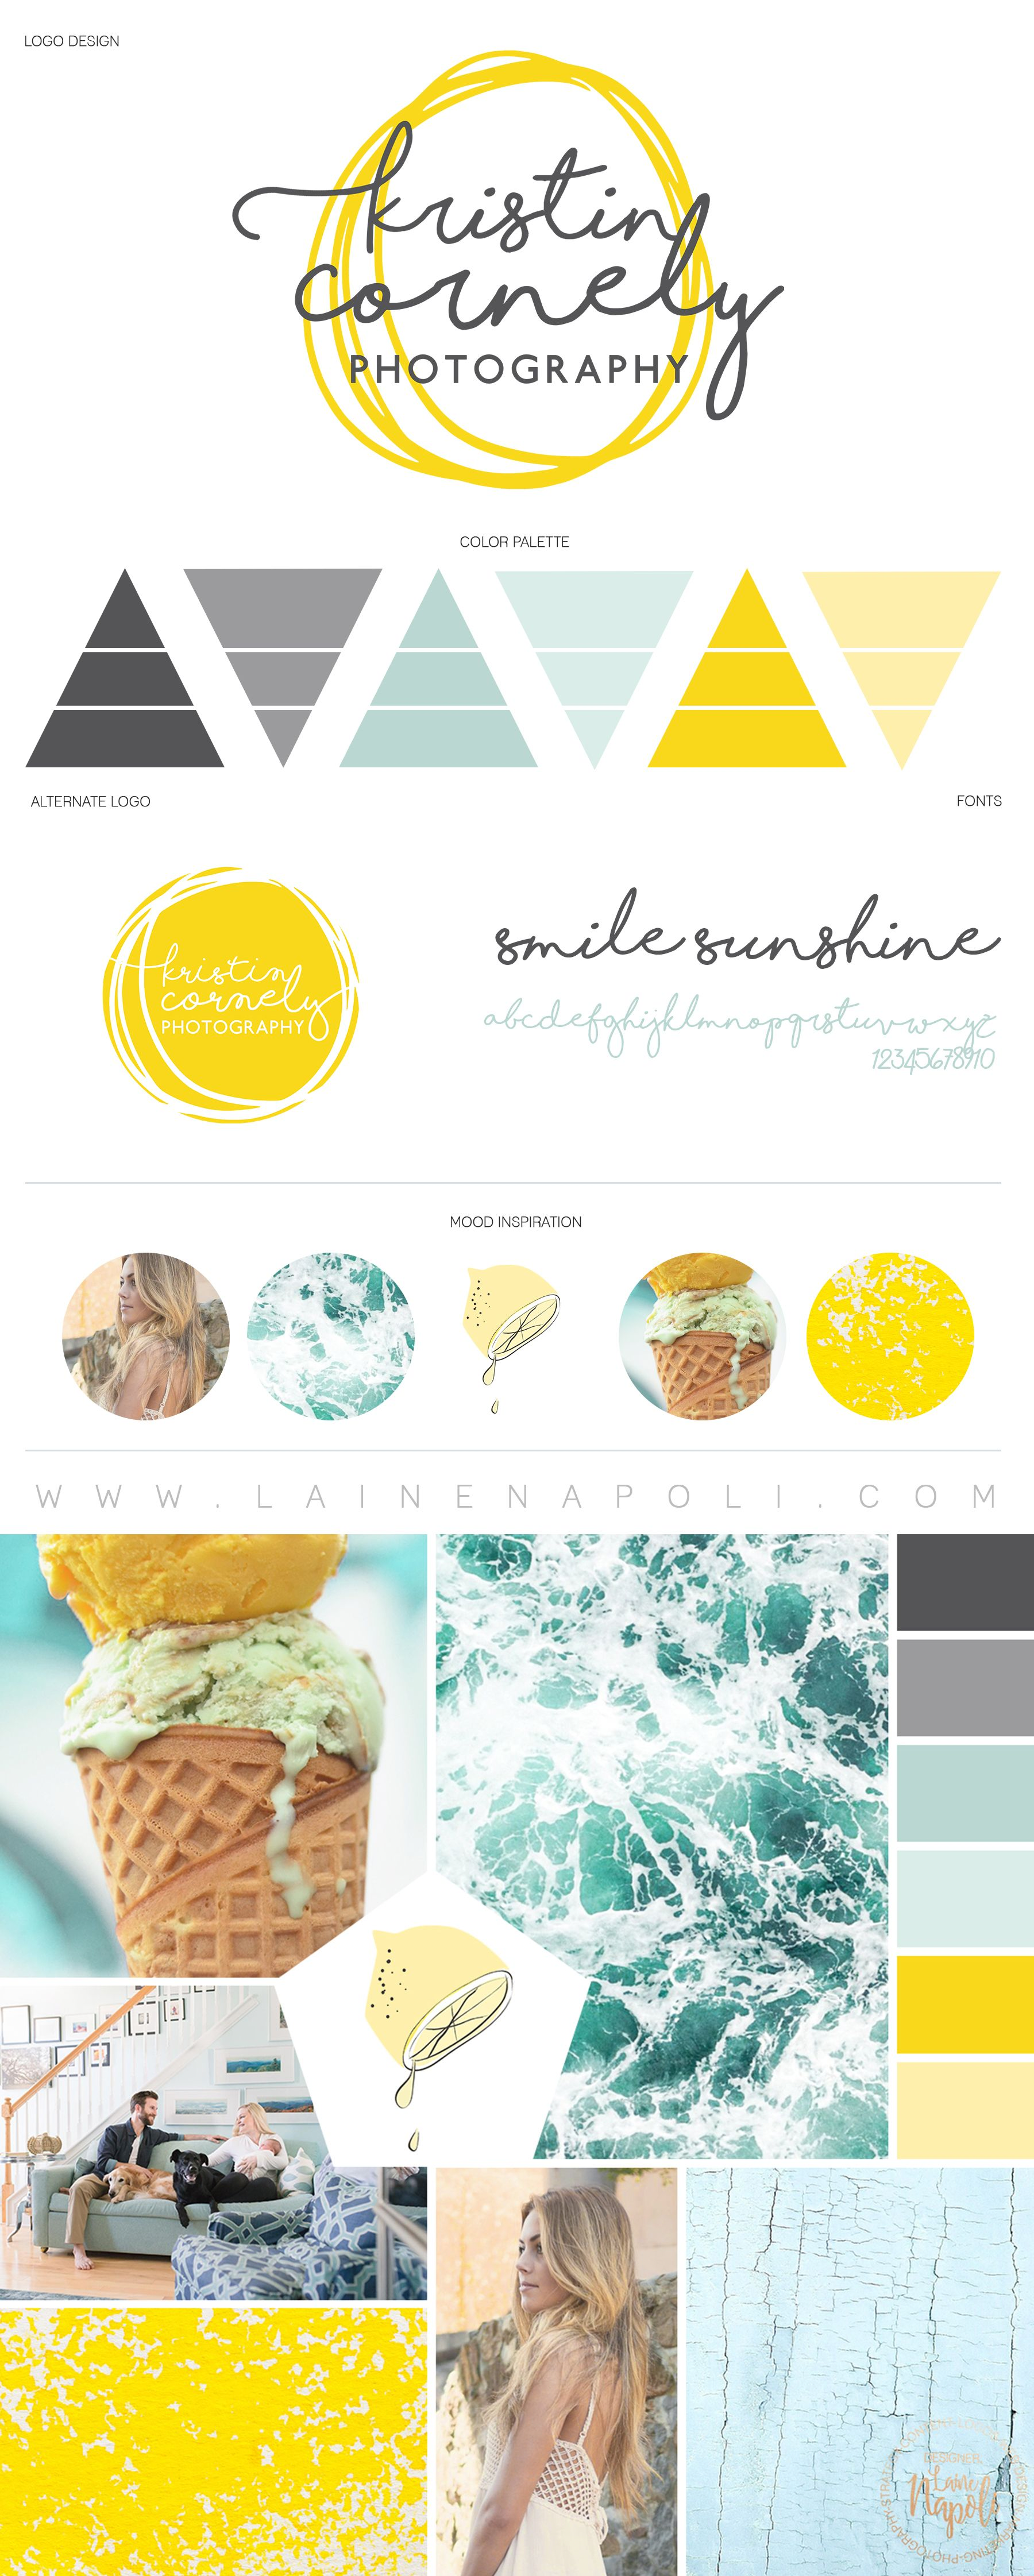 New launch from the Branding Studio. Kristin Cornely Photography. Sunshine Yellow, Grey, Light Blue, mood board with a touch of pure hapiness. Logo Design. Hand Drawn Sunshine Design. Photography Branding. Laine Napoli Branding www.lainenapoli.com #moodboards